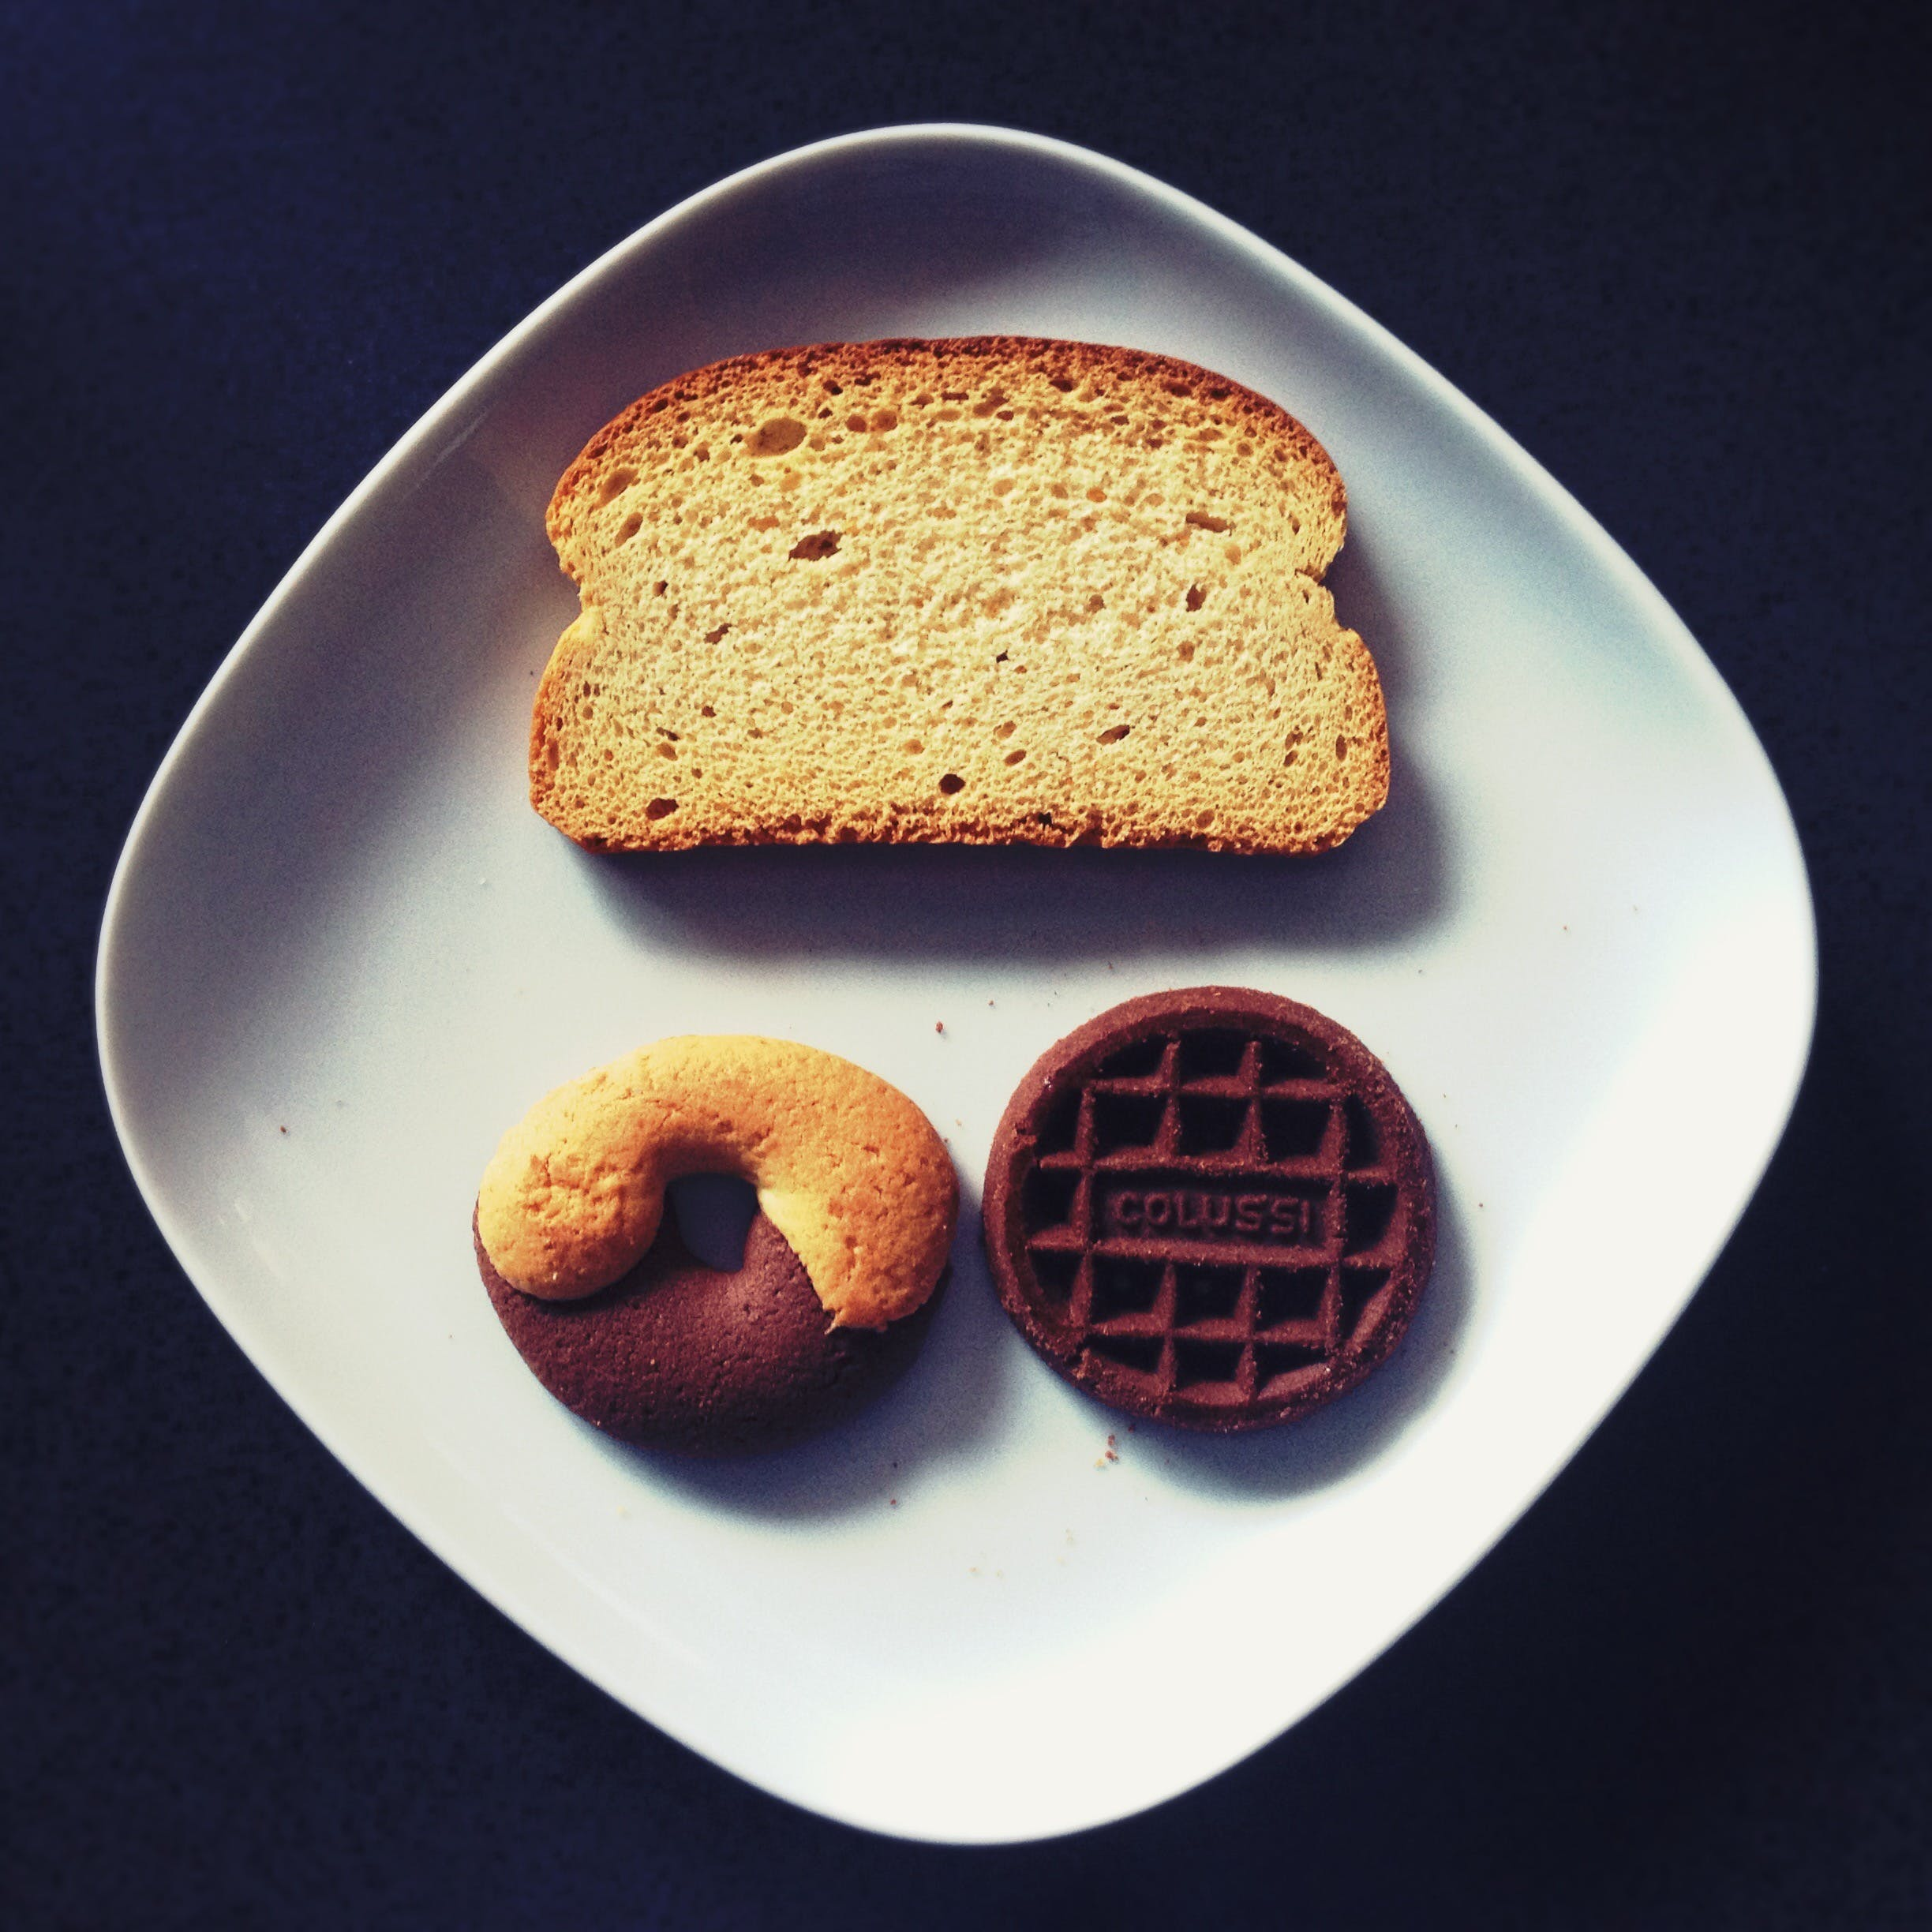 Toasted Bread, Donut, and Chocolate on Top of White Ceramic Plate